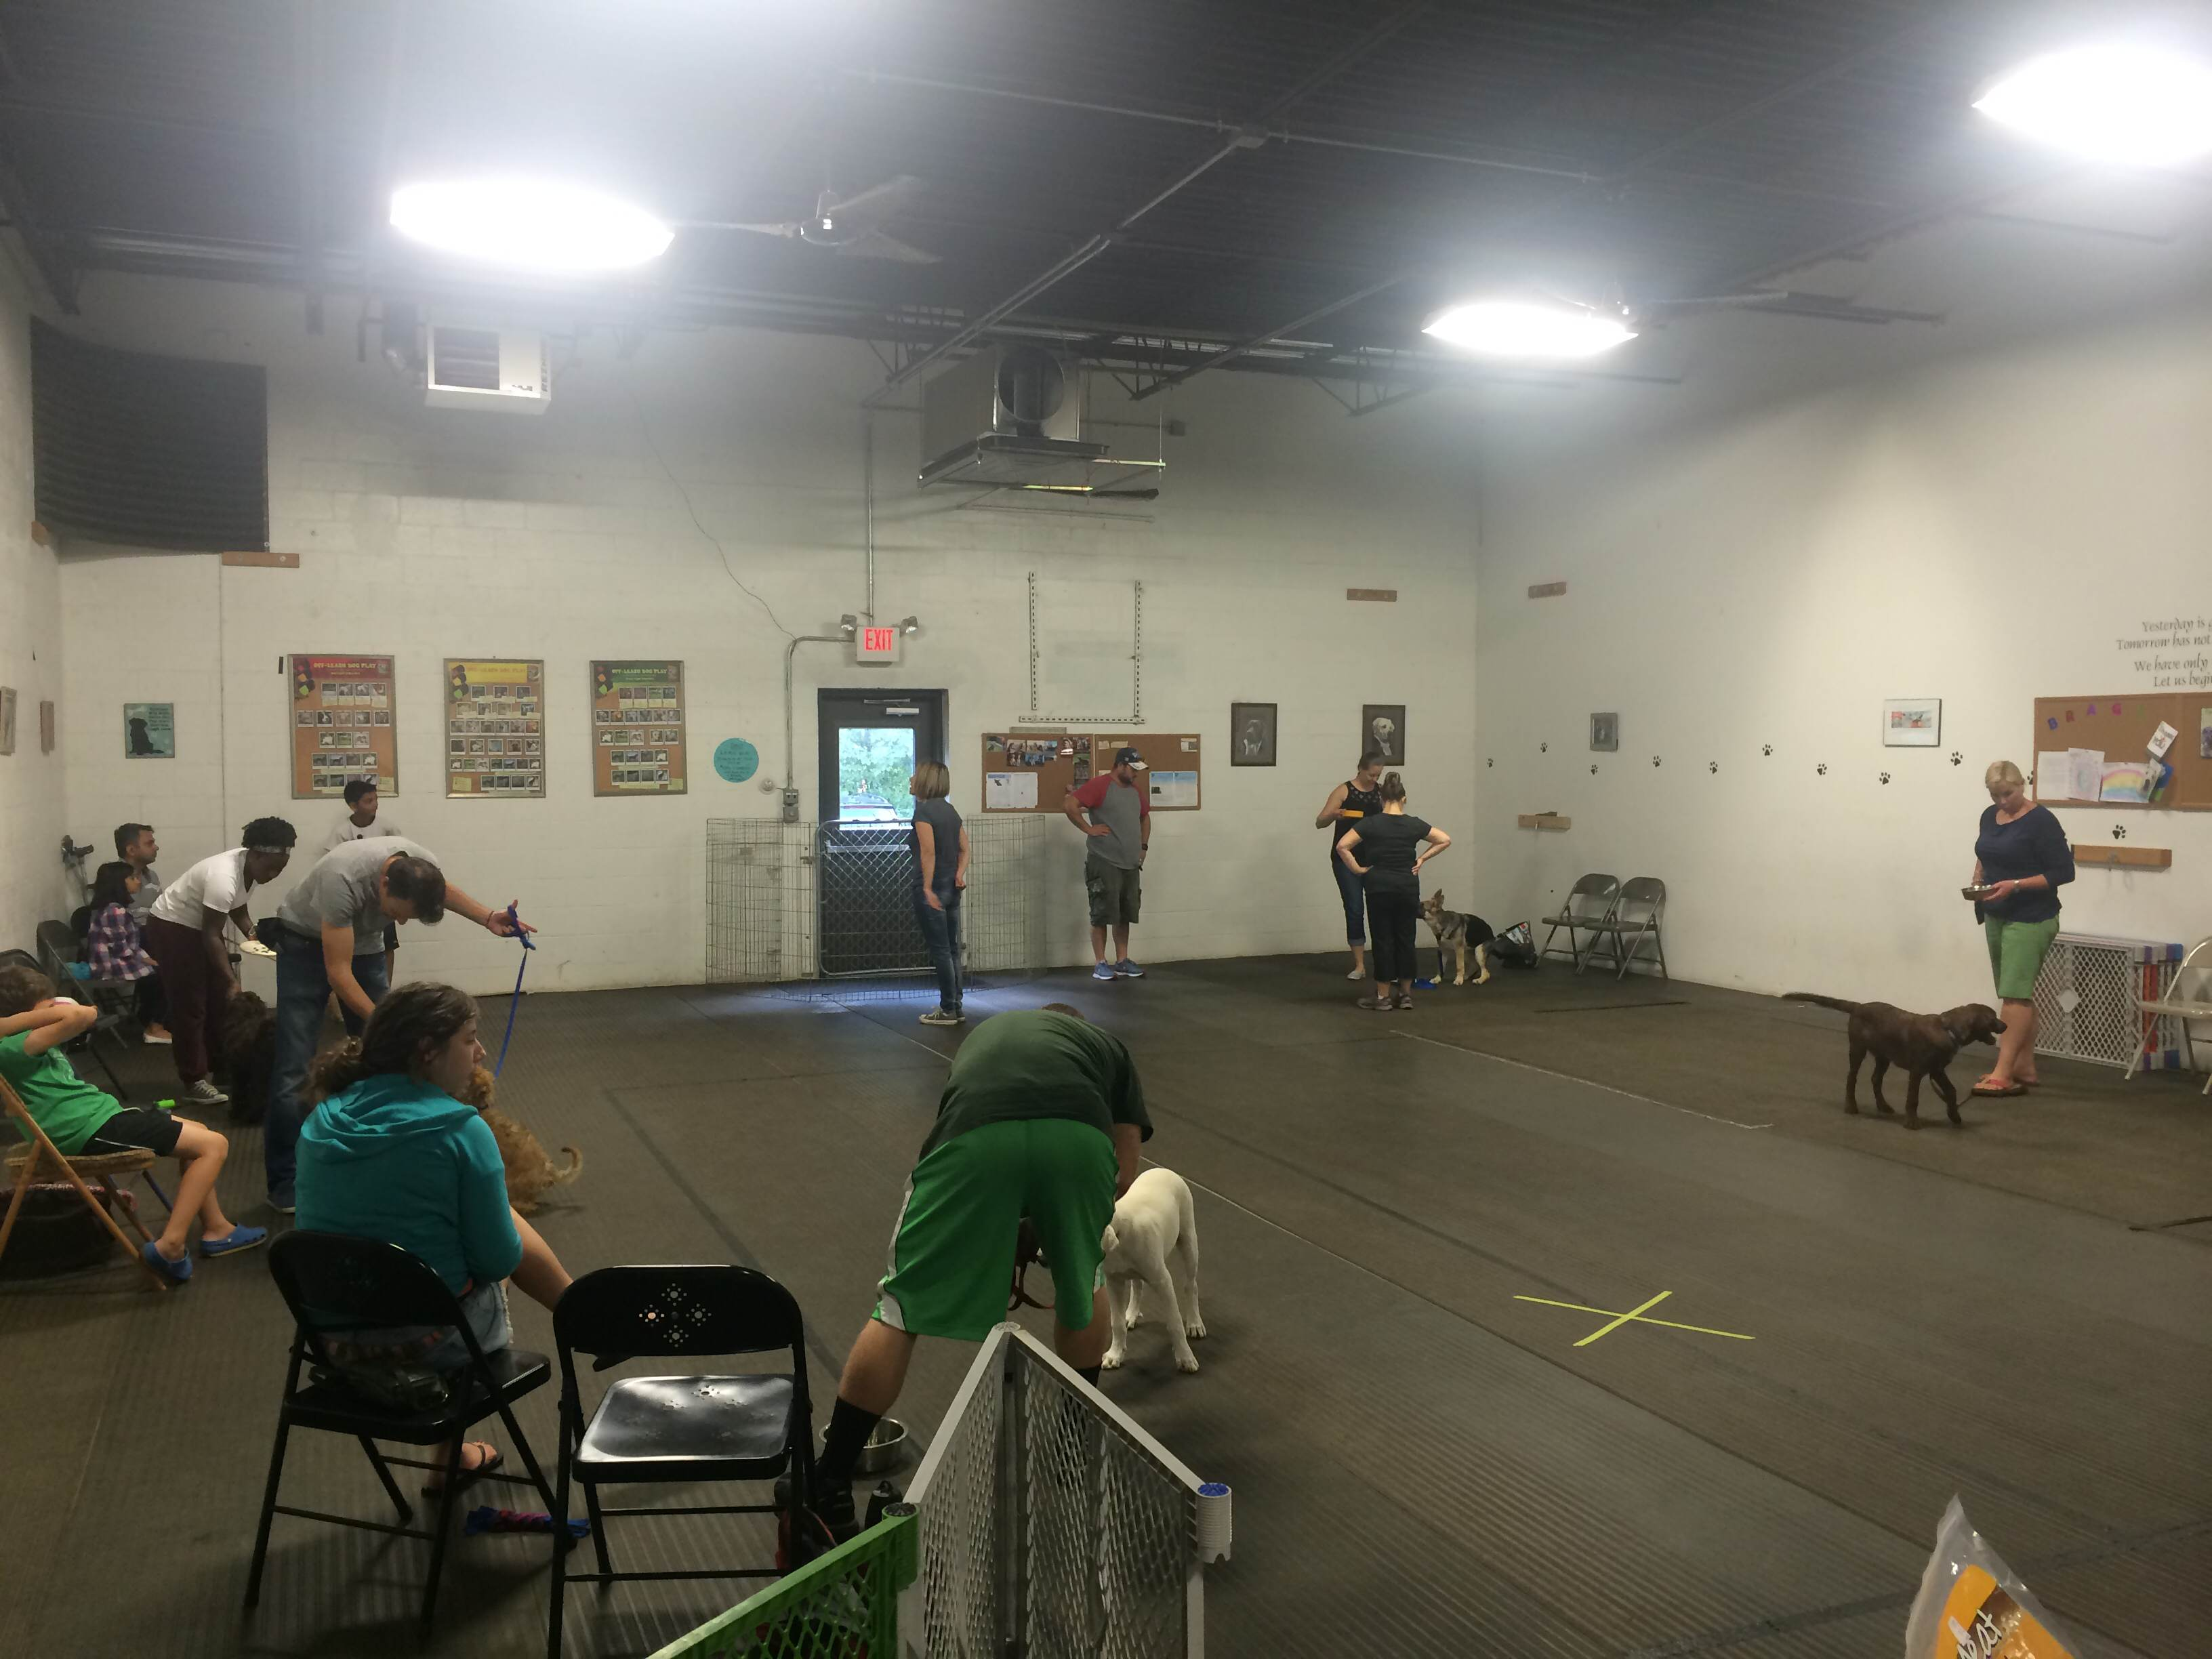 Live from Heavenly Hounds Dog Training!